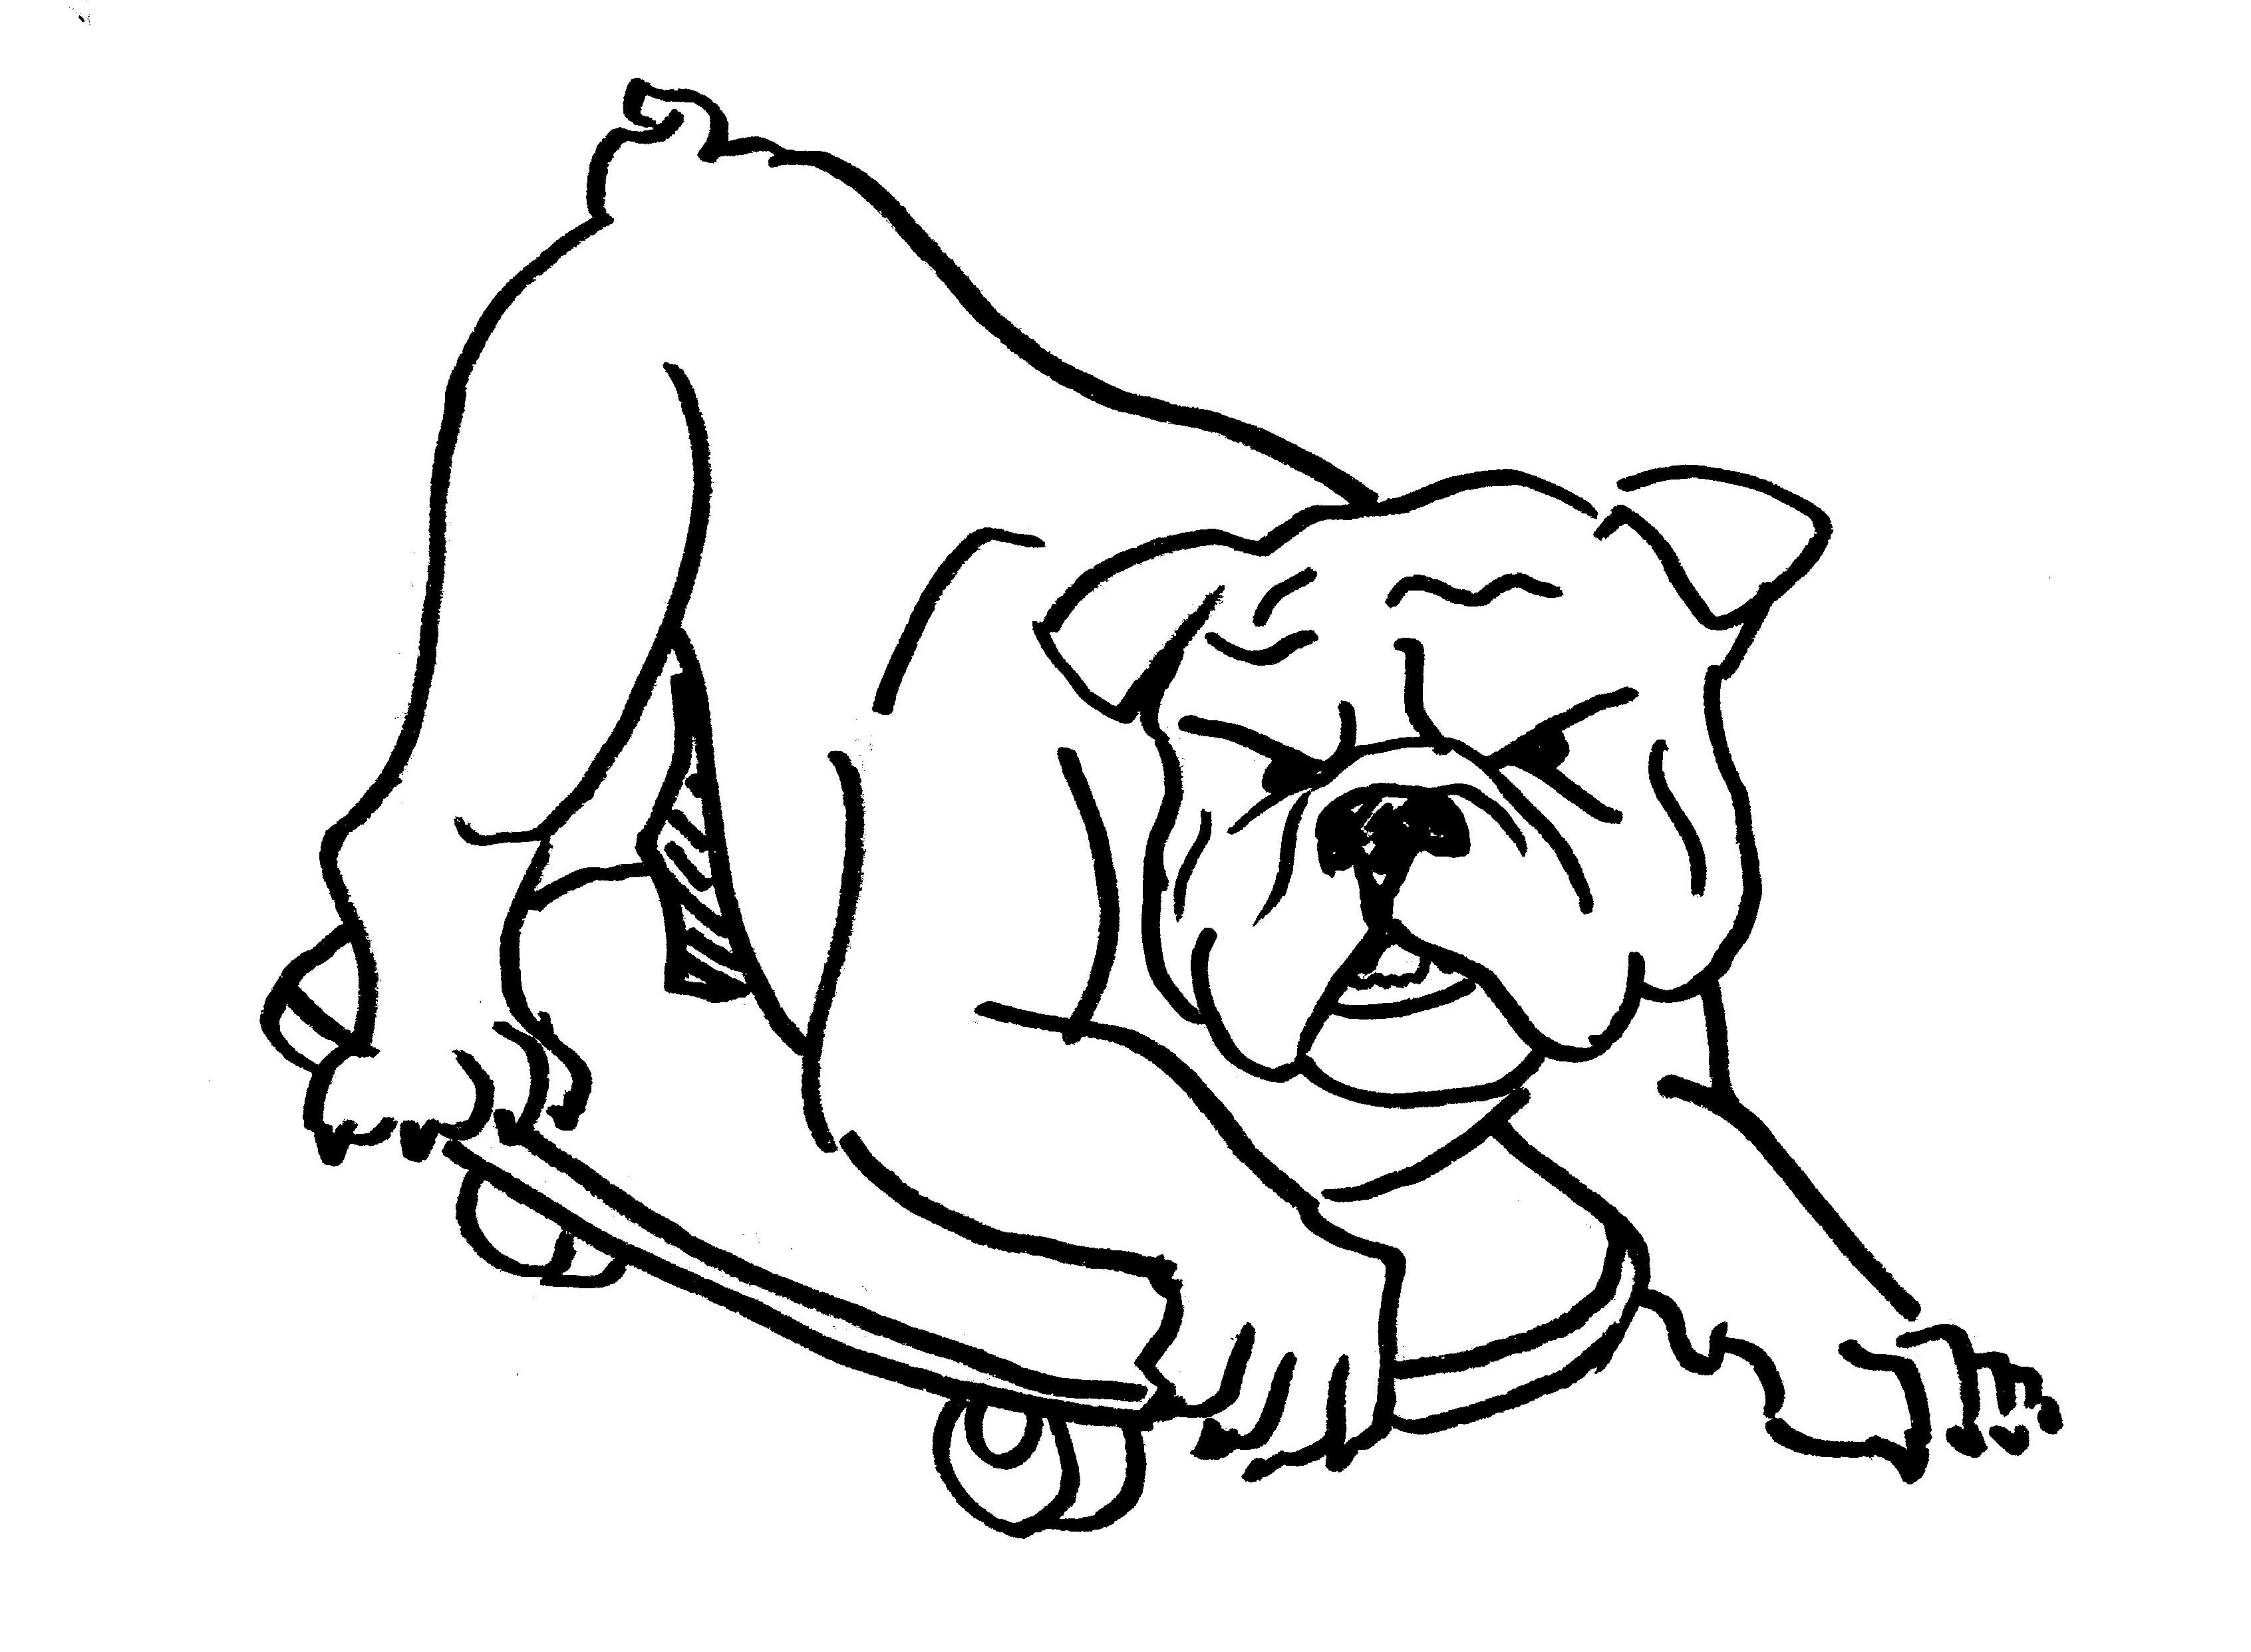 Easy Line Drawings Of Animals : Bulldog drawing easy at getdrawings.com free for personal use